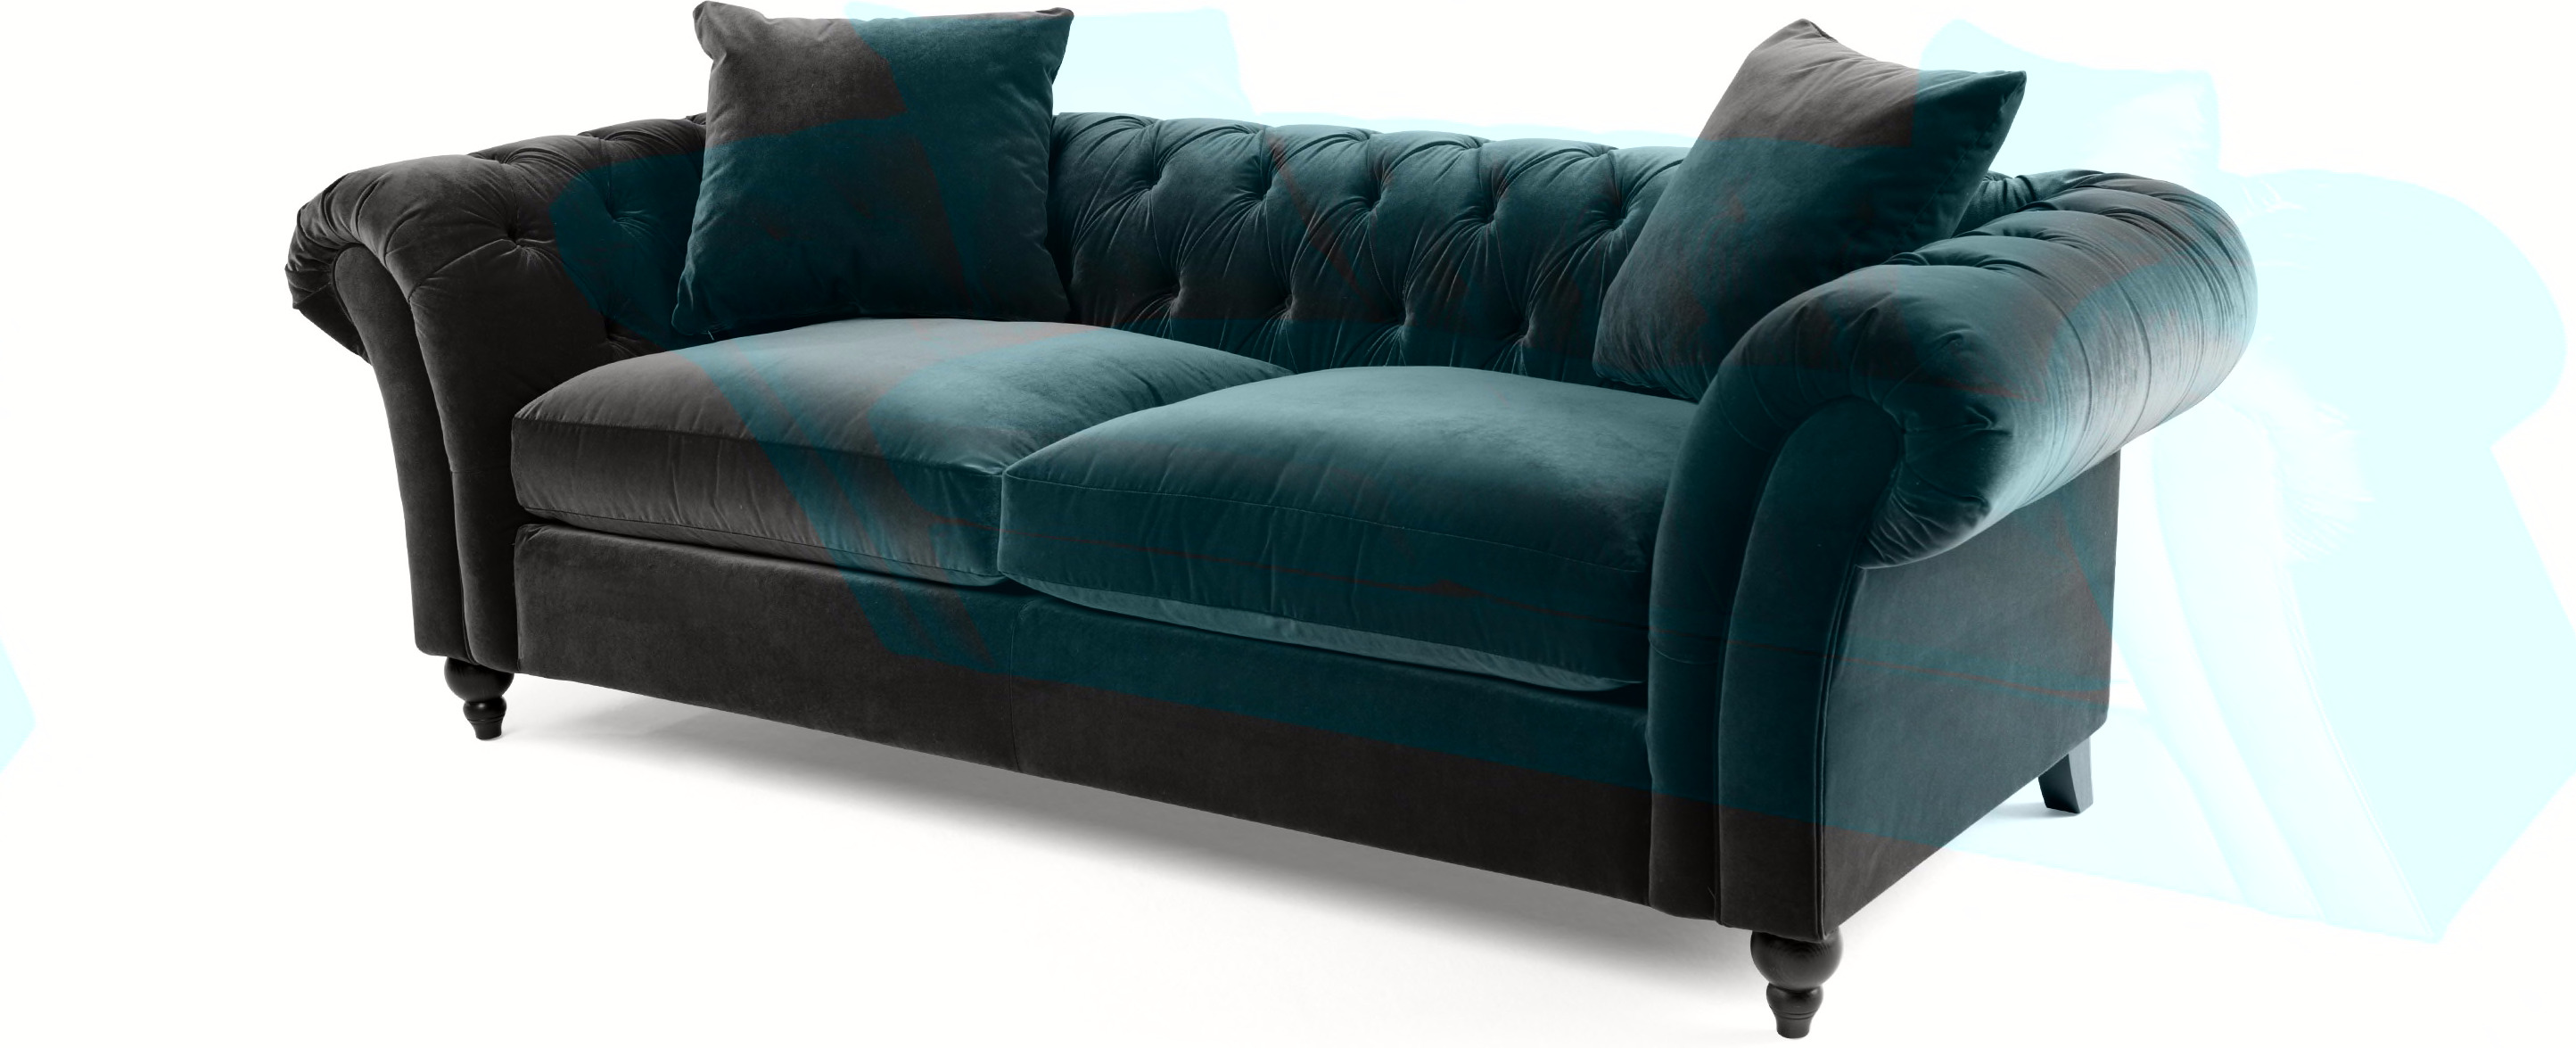 best velvet chesterfield sofa prices in sofas online. Black Bedroom Furniture Sets. Home Design Ideas